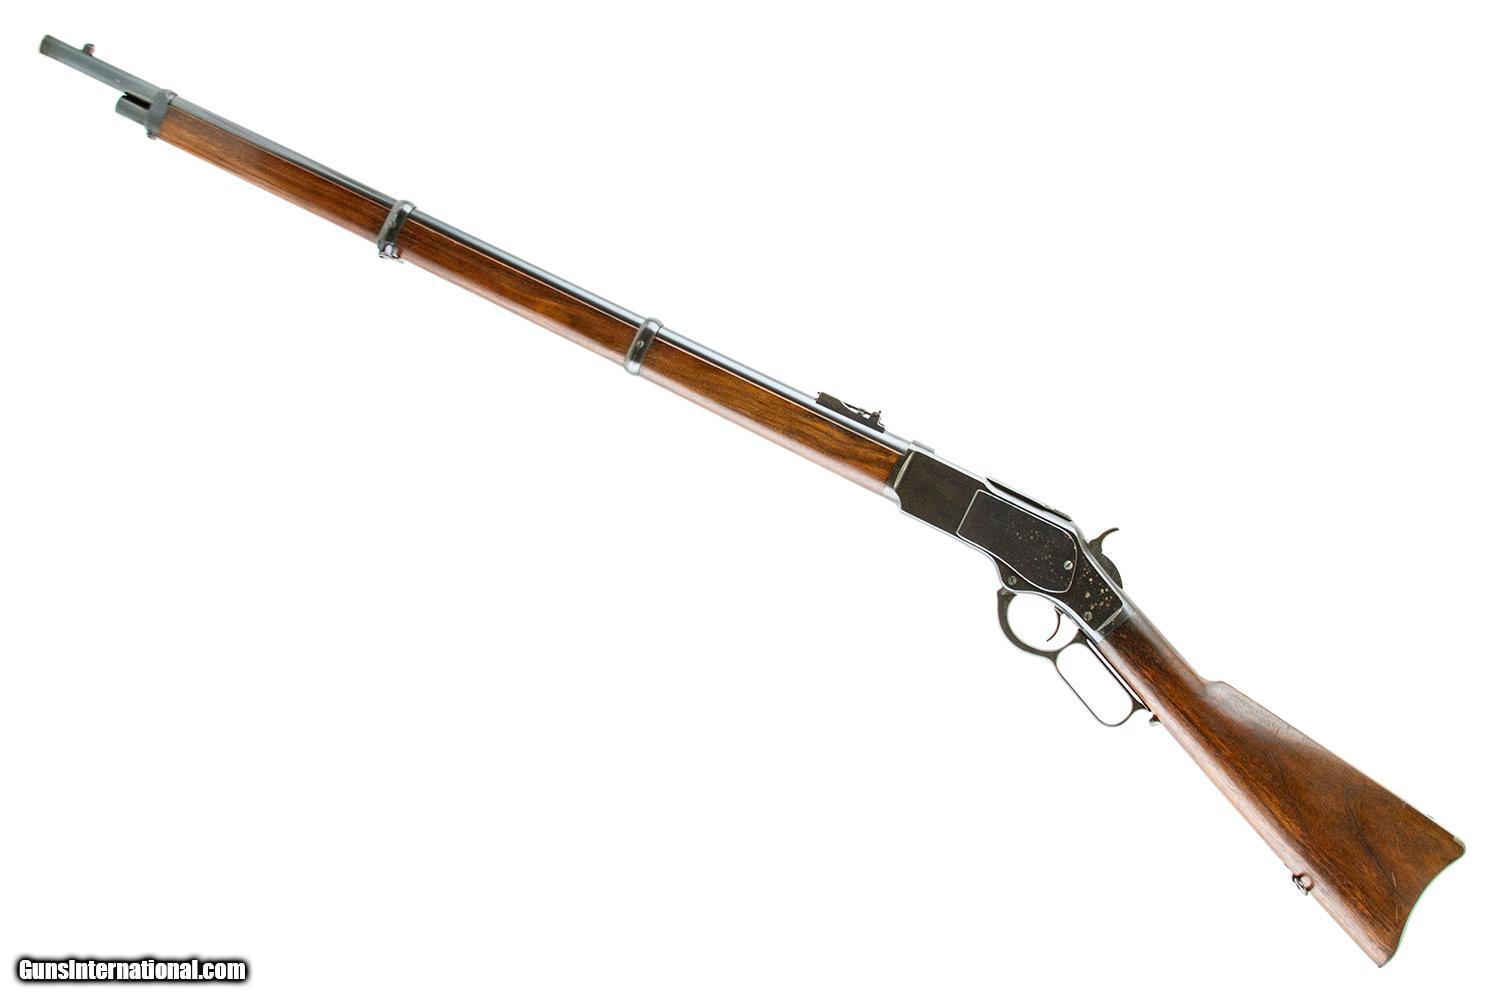 Military Guns For Sale >> WINCHESTER 1873 MUSKET 44-40